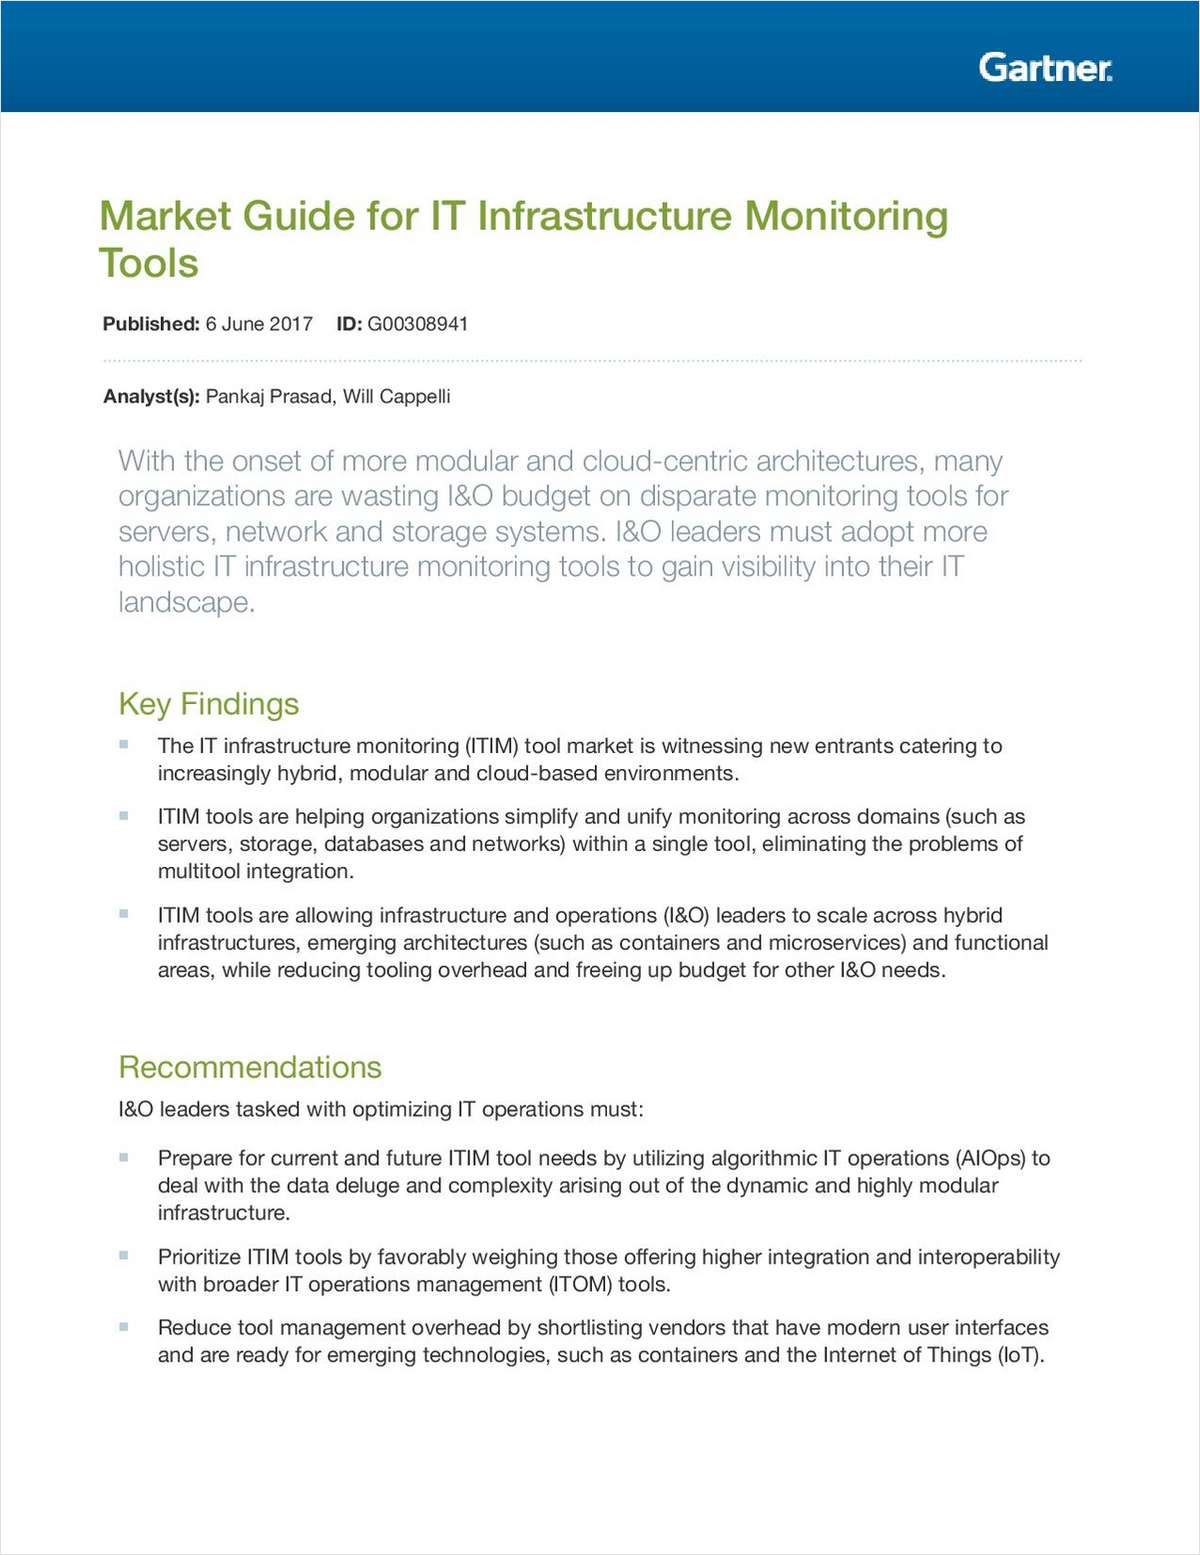 Market Guide for IT Infrastructure Monitoring Tools